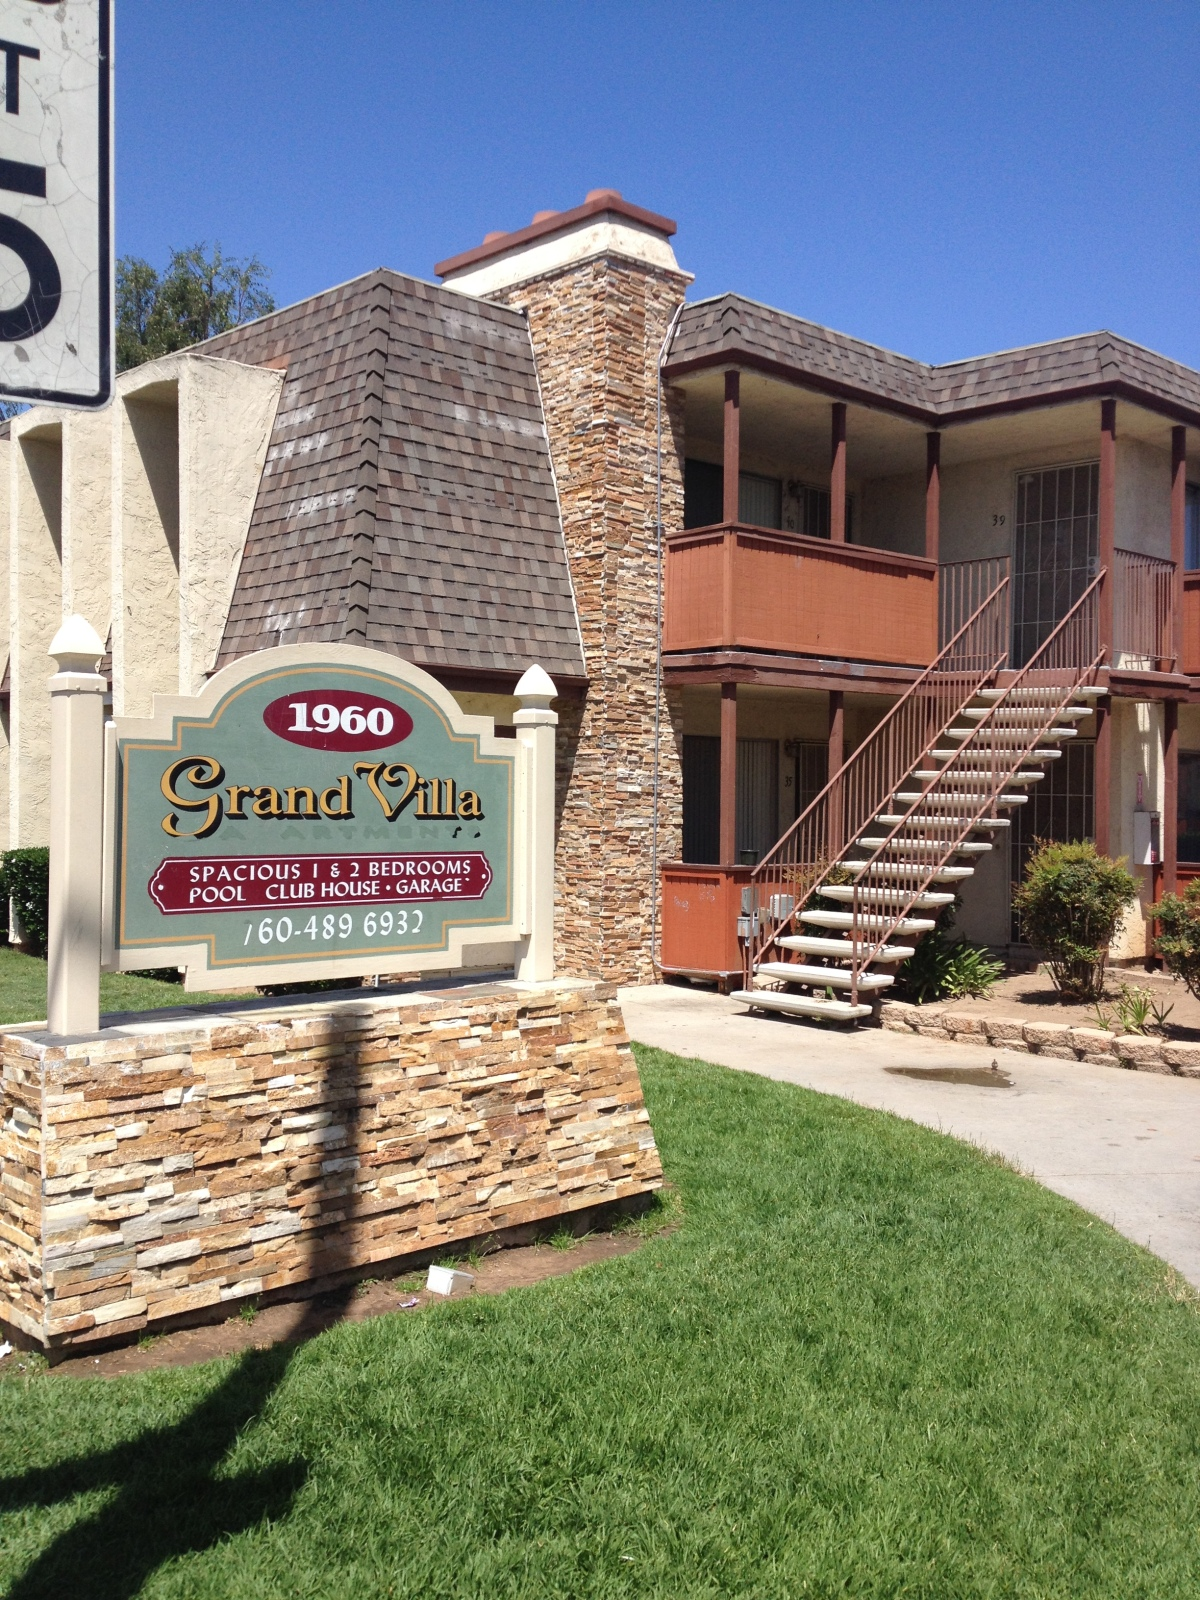 Grand Villa Apartments in Escondido.